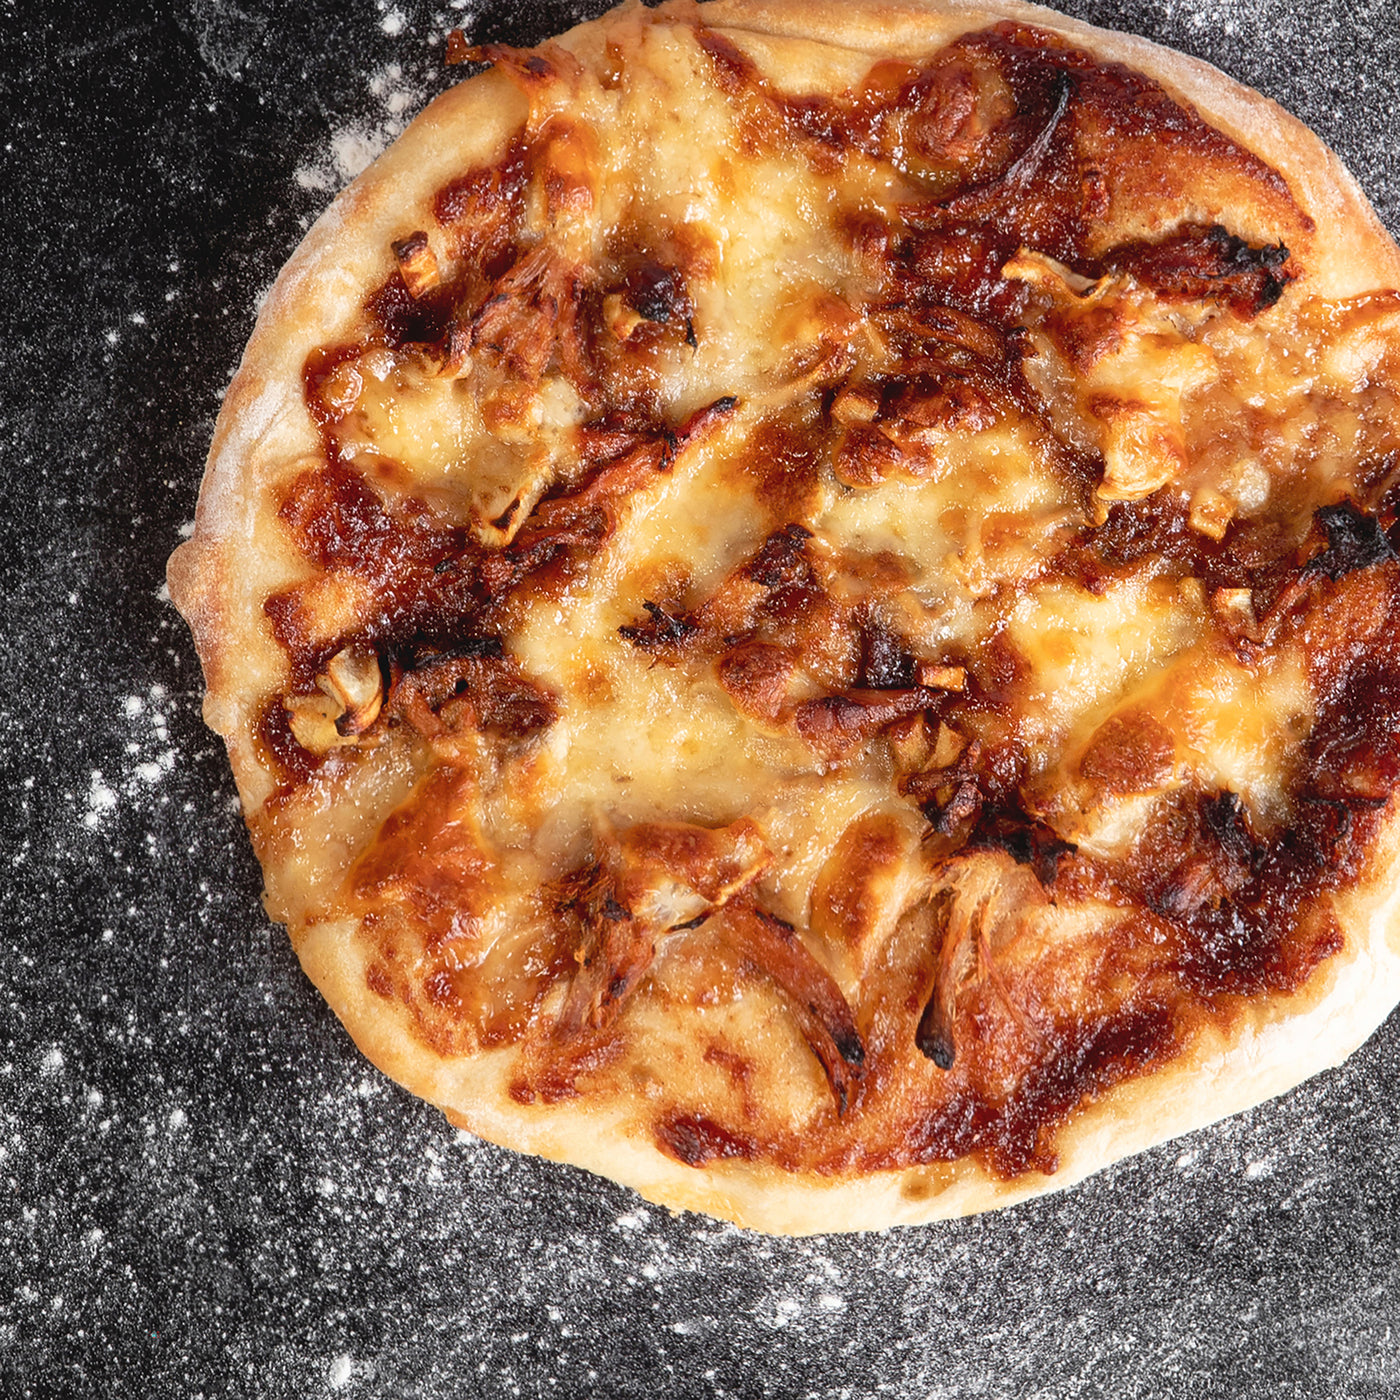 Apple Maple Pizza with Pulled Pork & Parsnips